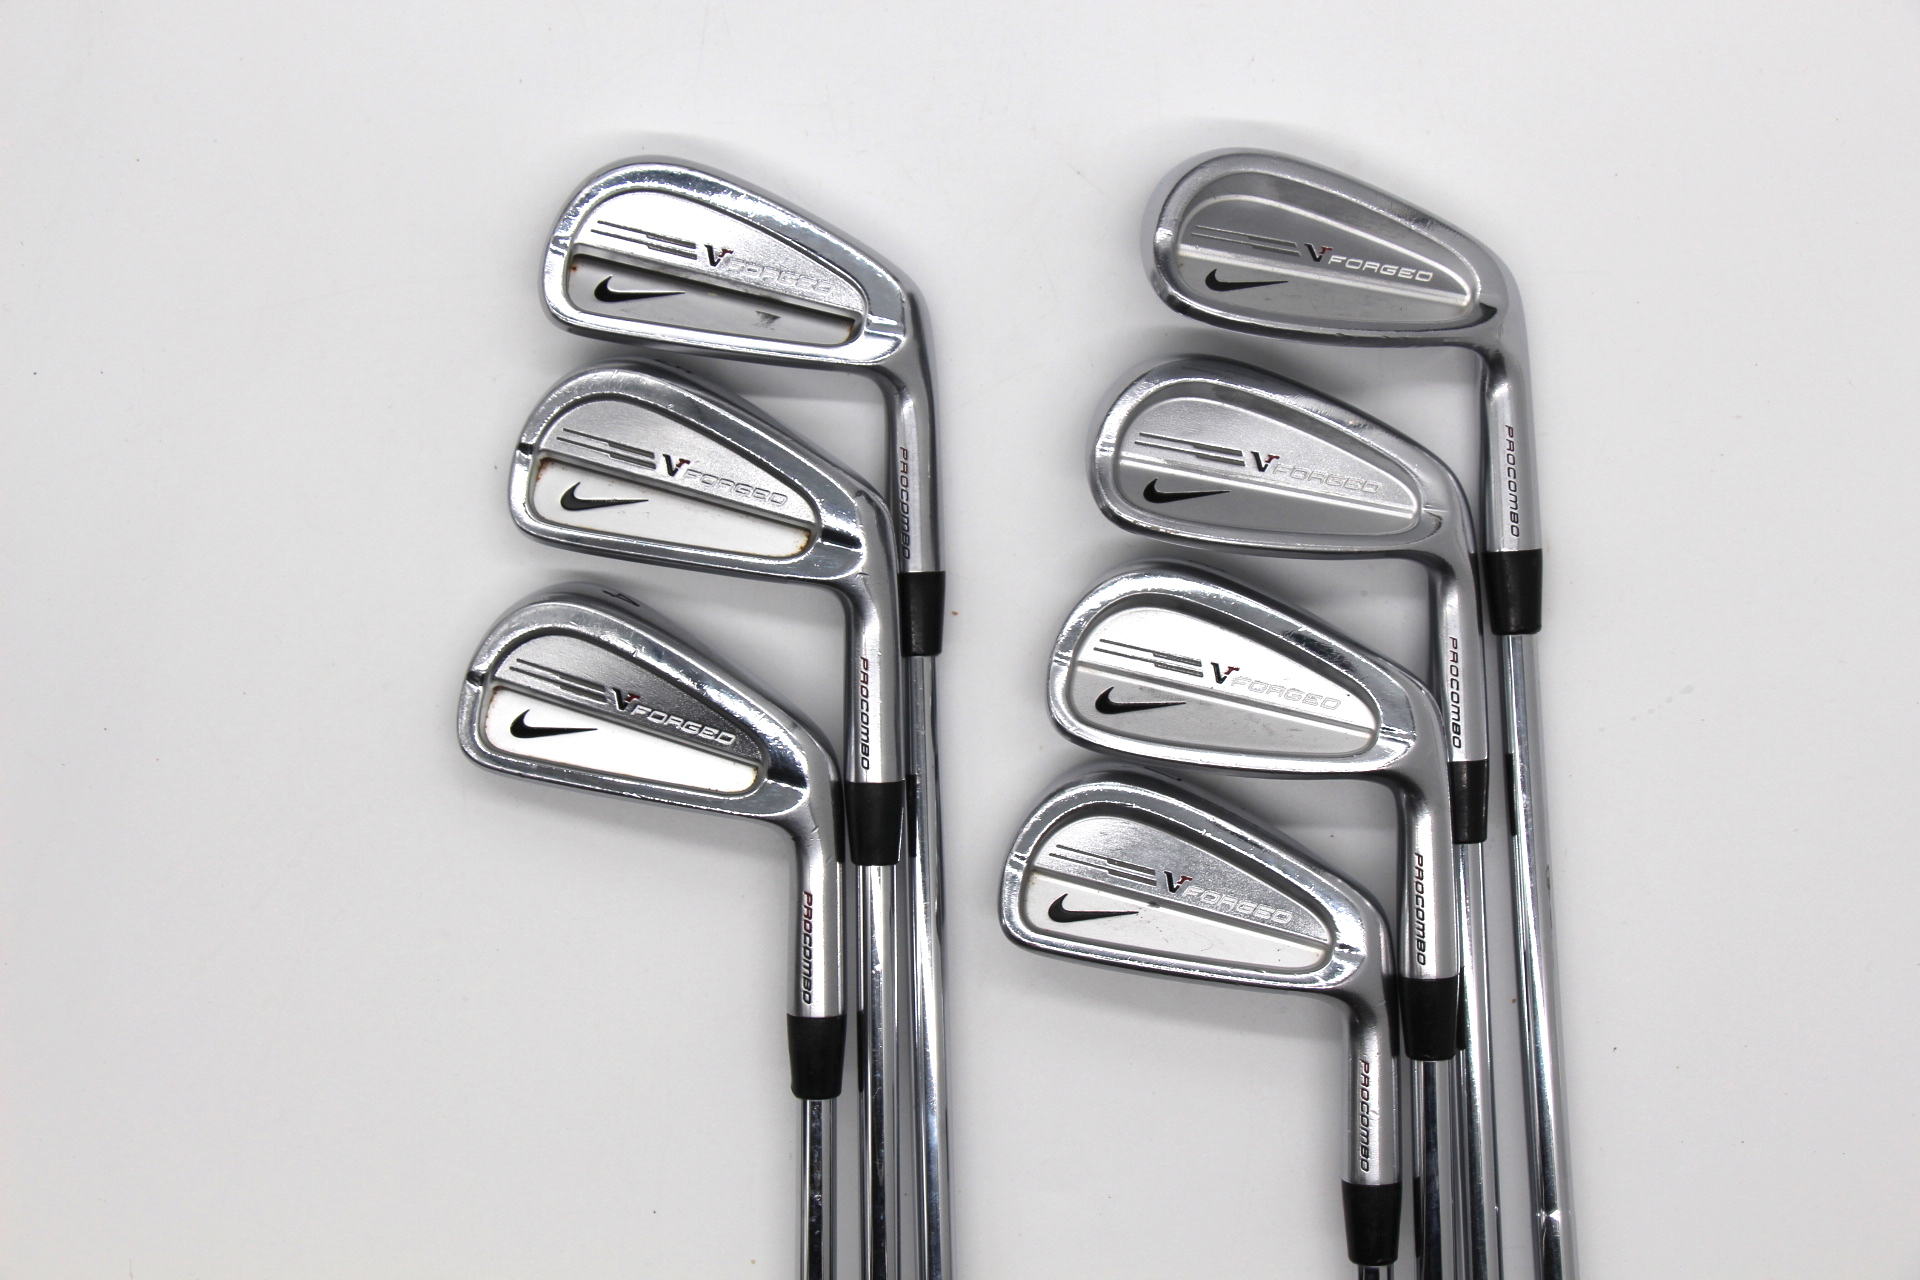 Nike V Forged Pro Combo 4-PW Iron Set